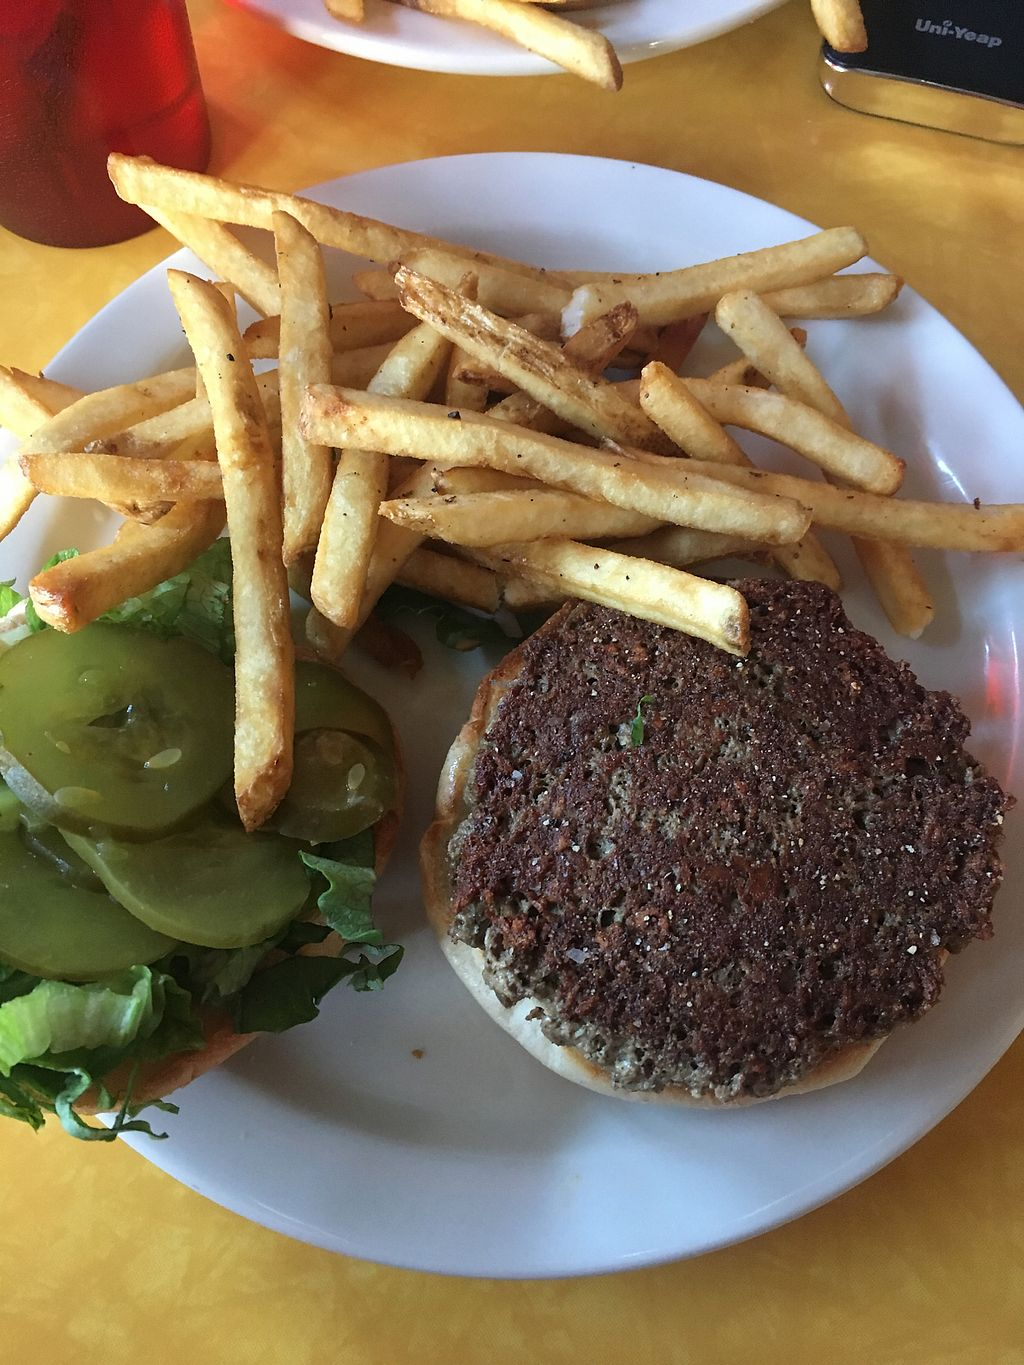 """Photo of Cafe 821  by <a href=""""/members/profile/mem2024"""">mem2024</a> <br/>Impossible burger - tastes like a Big Mac!!! <br/> February 4, 2018  - <a href='/contact/abuse/image/20708/354955'>Report</a>"""